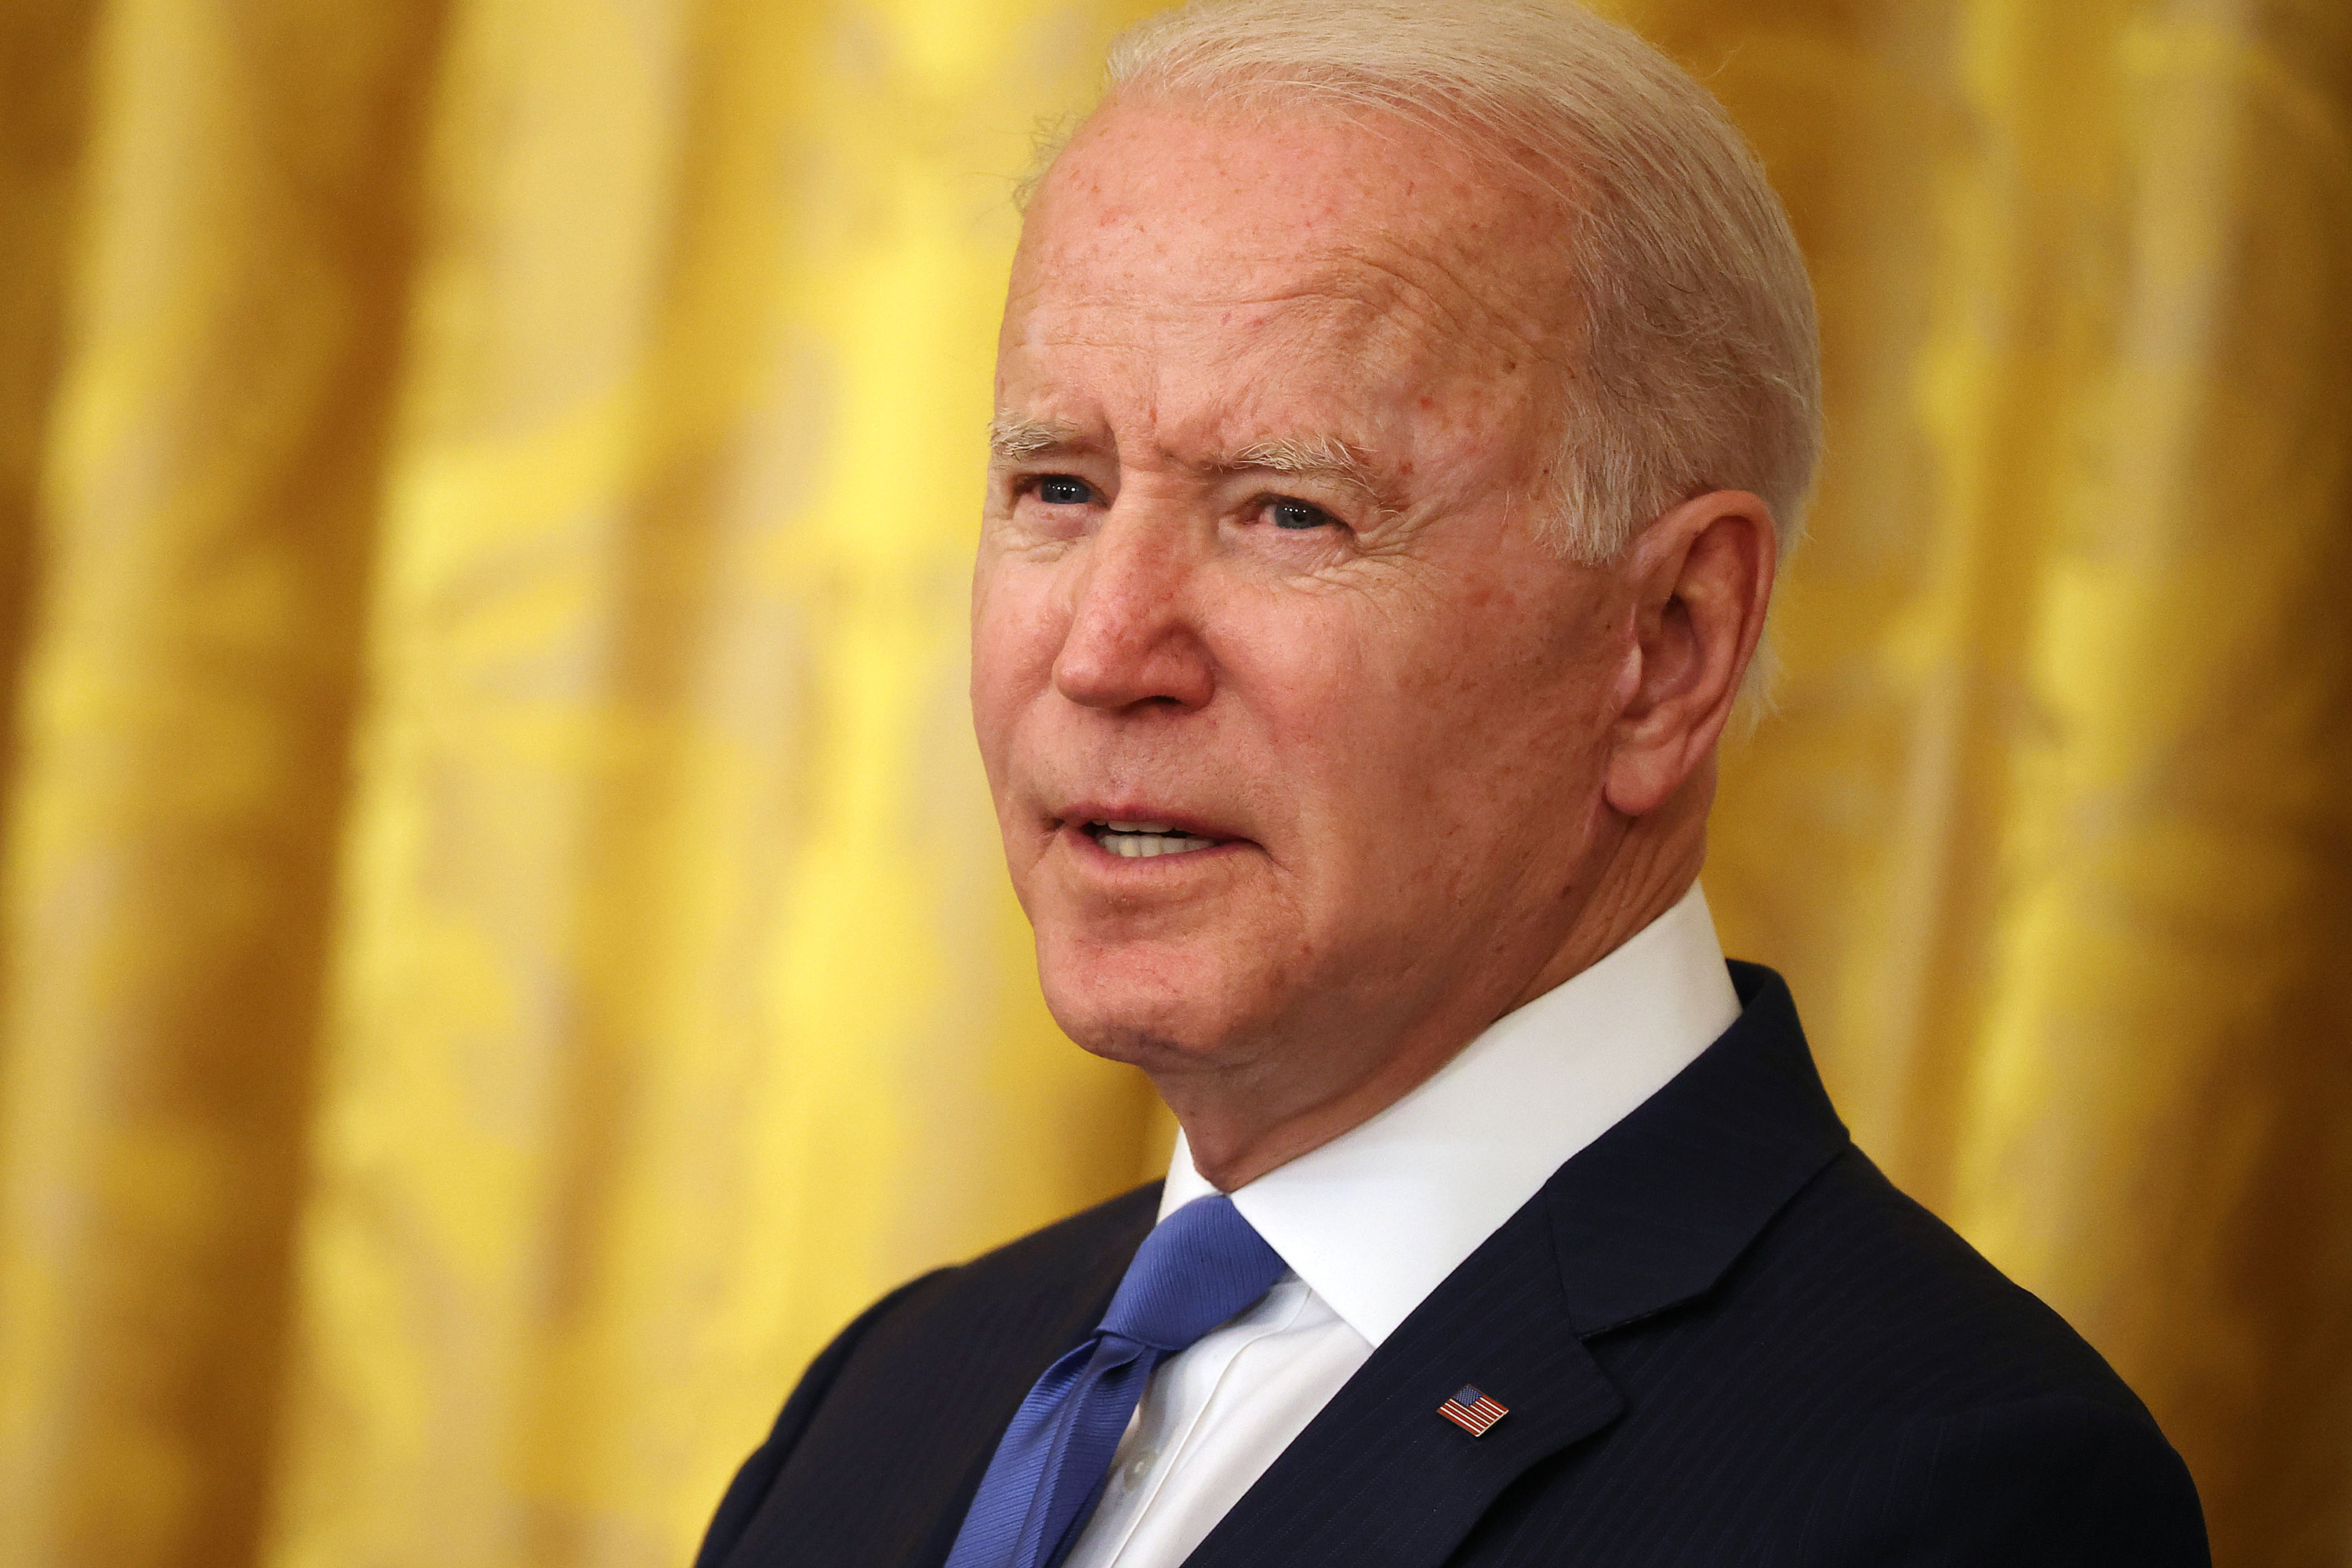 Biden will travel to Michigan over July 4th weekend to celebrate progress in Covid-19 fight